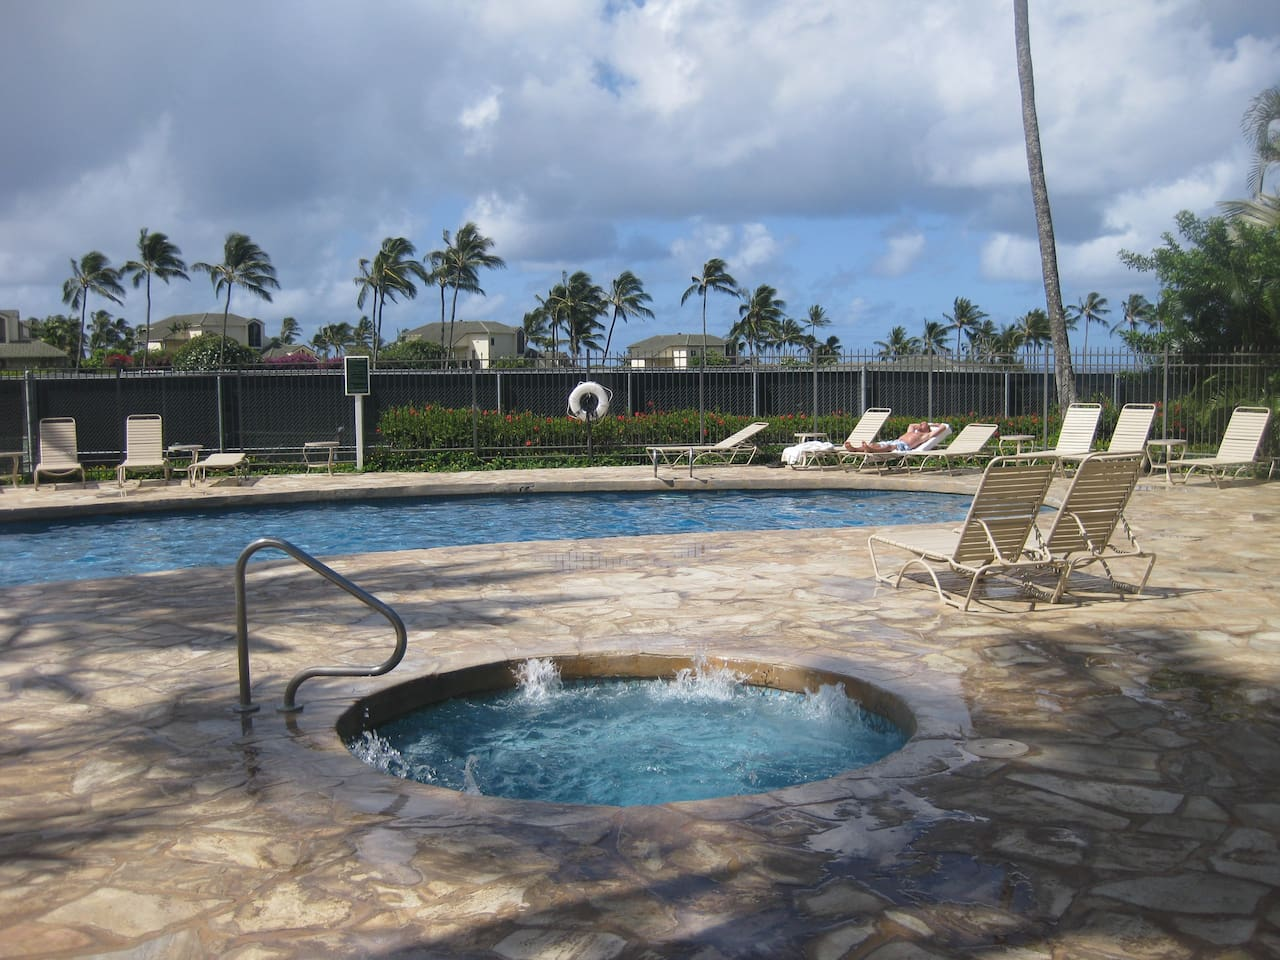 Pool and Jacuzzi at the Poipu Kai Resort for use by our guests.